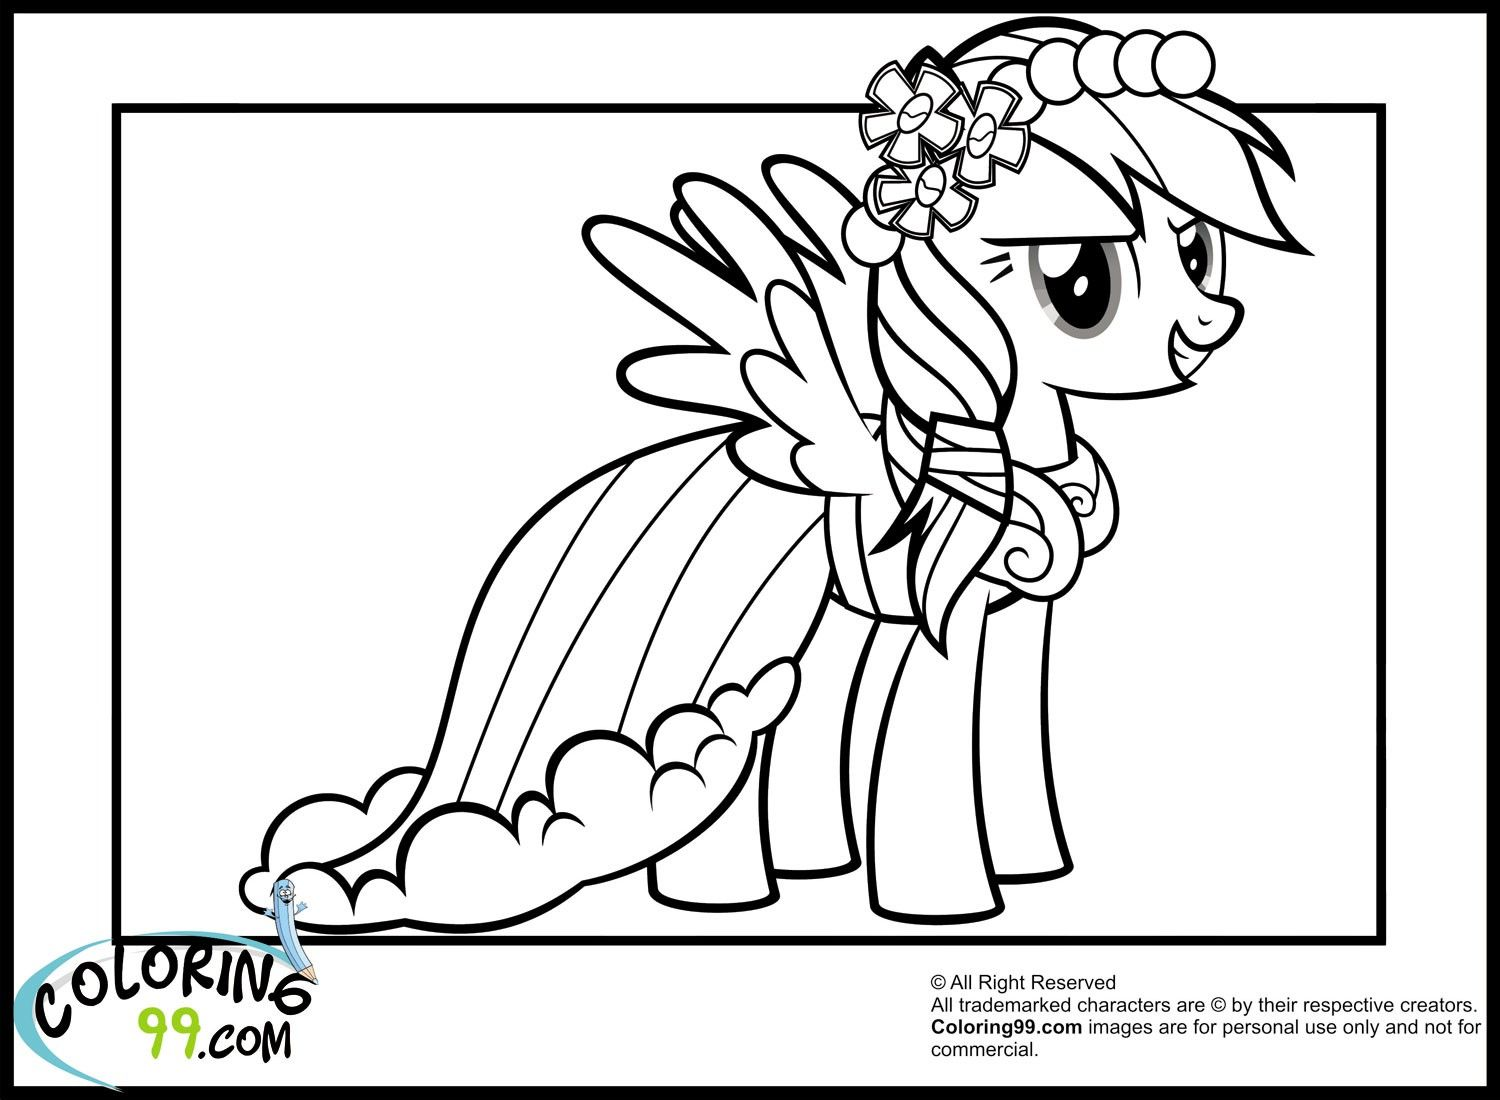 Princess Rainbow Dash Coloring Pages From The Thousands Of Pictures On The Internet In Cartoon Coloring Pages Princess Coloring Pages Mermaid Coloring Pages [ 1100 x 1500 Pixel ]